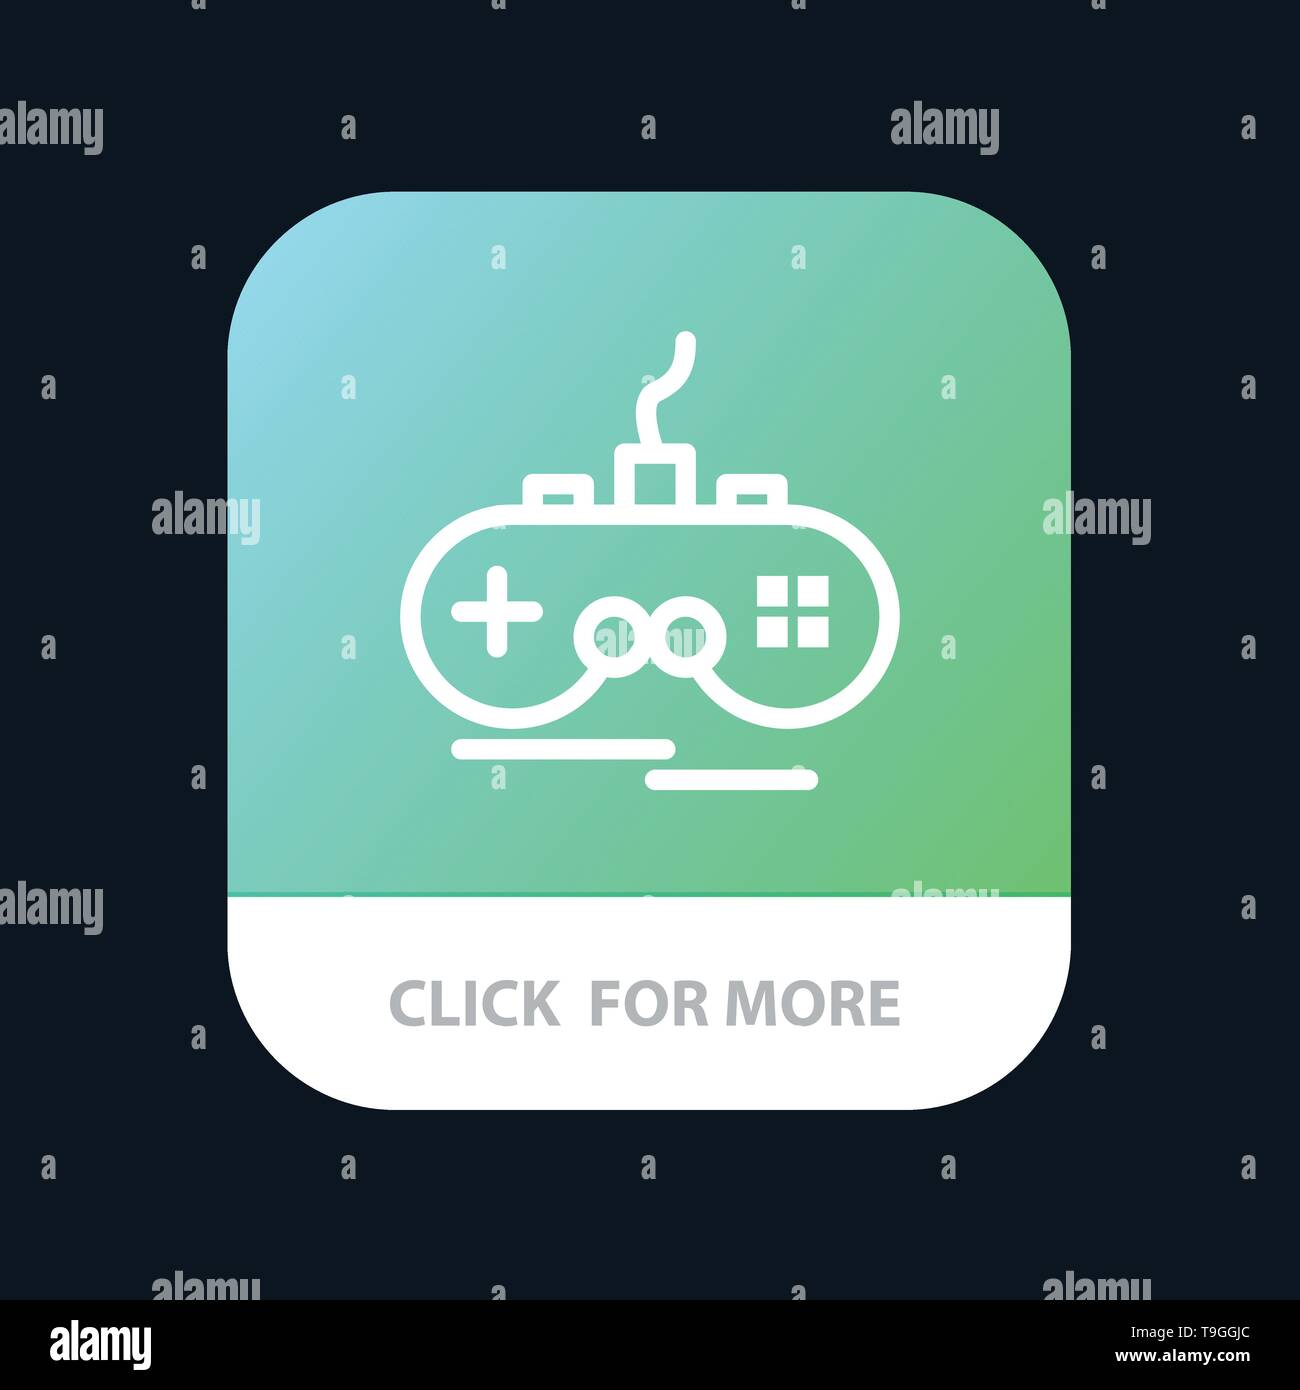 Joystick, Wireless, Xbox, Gamepad Mobile App Button  Android